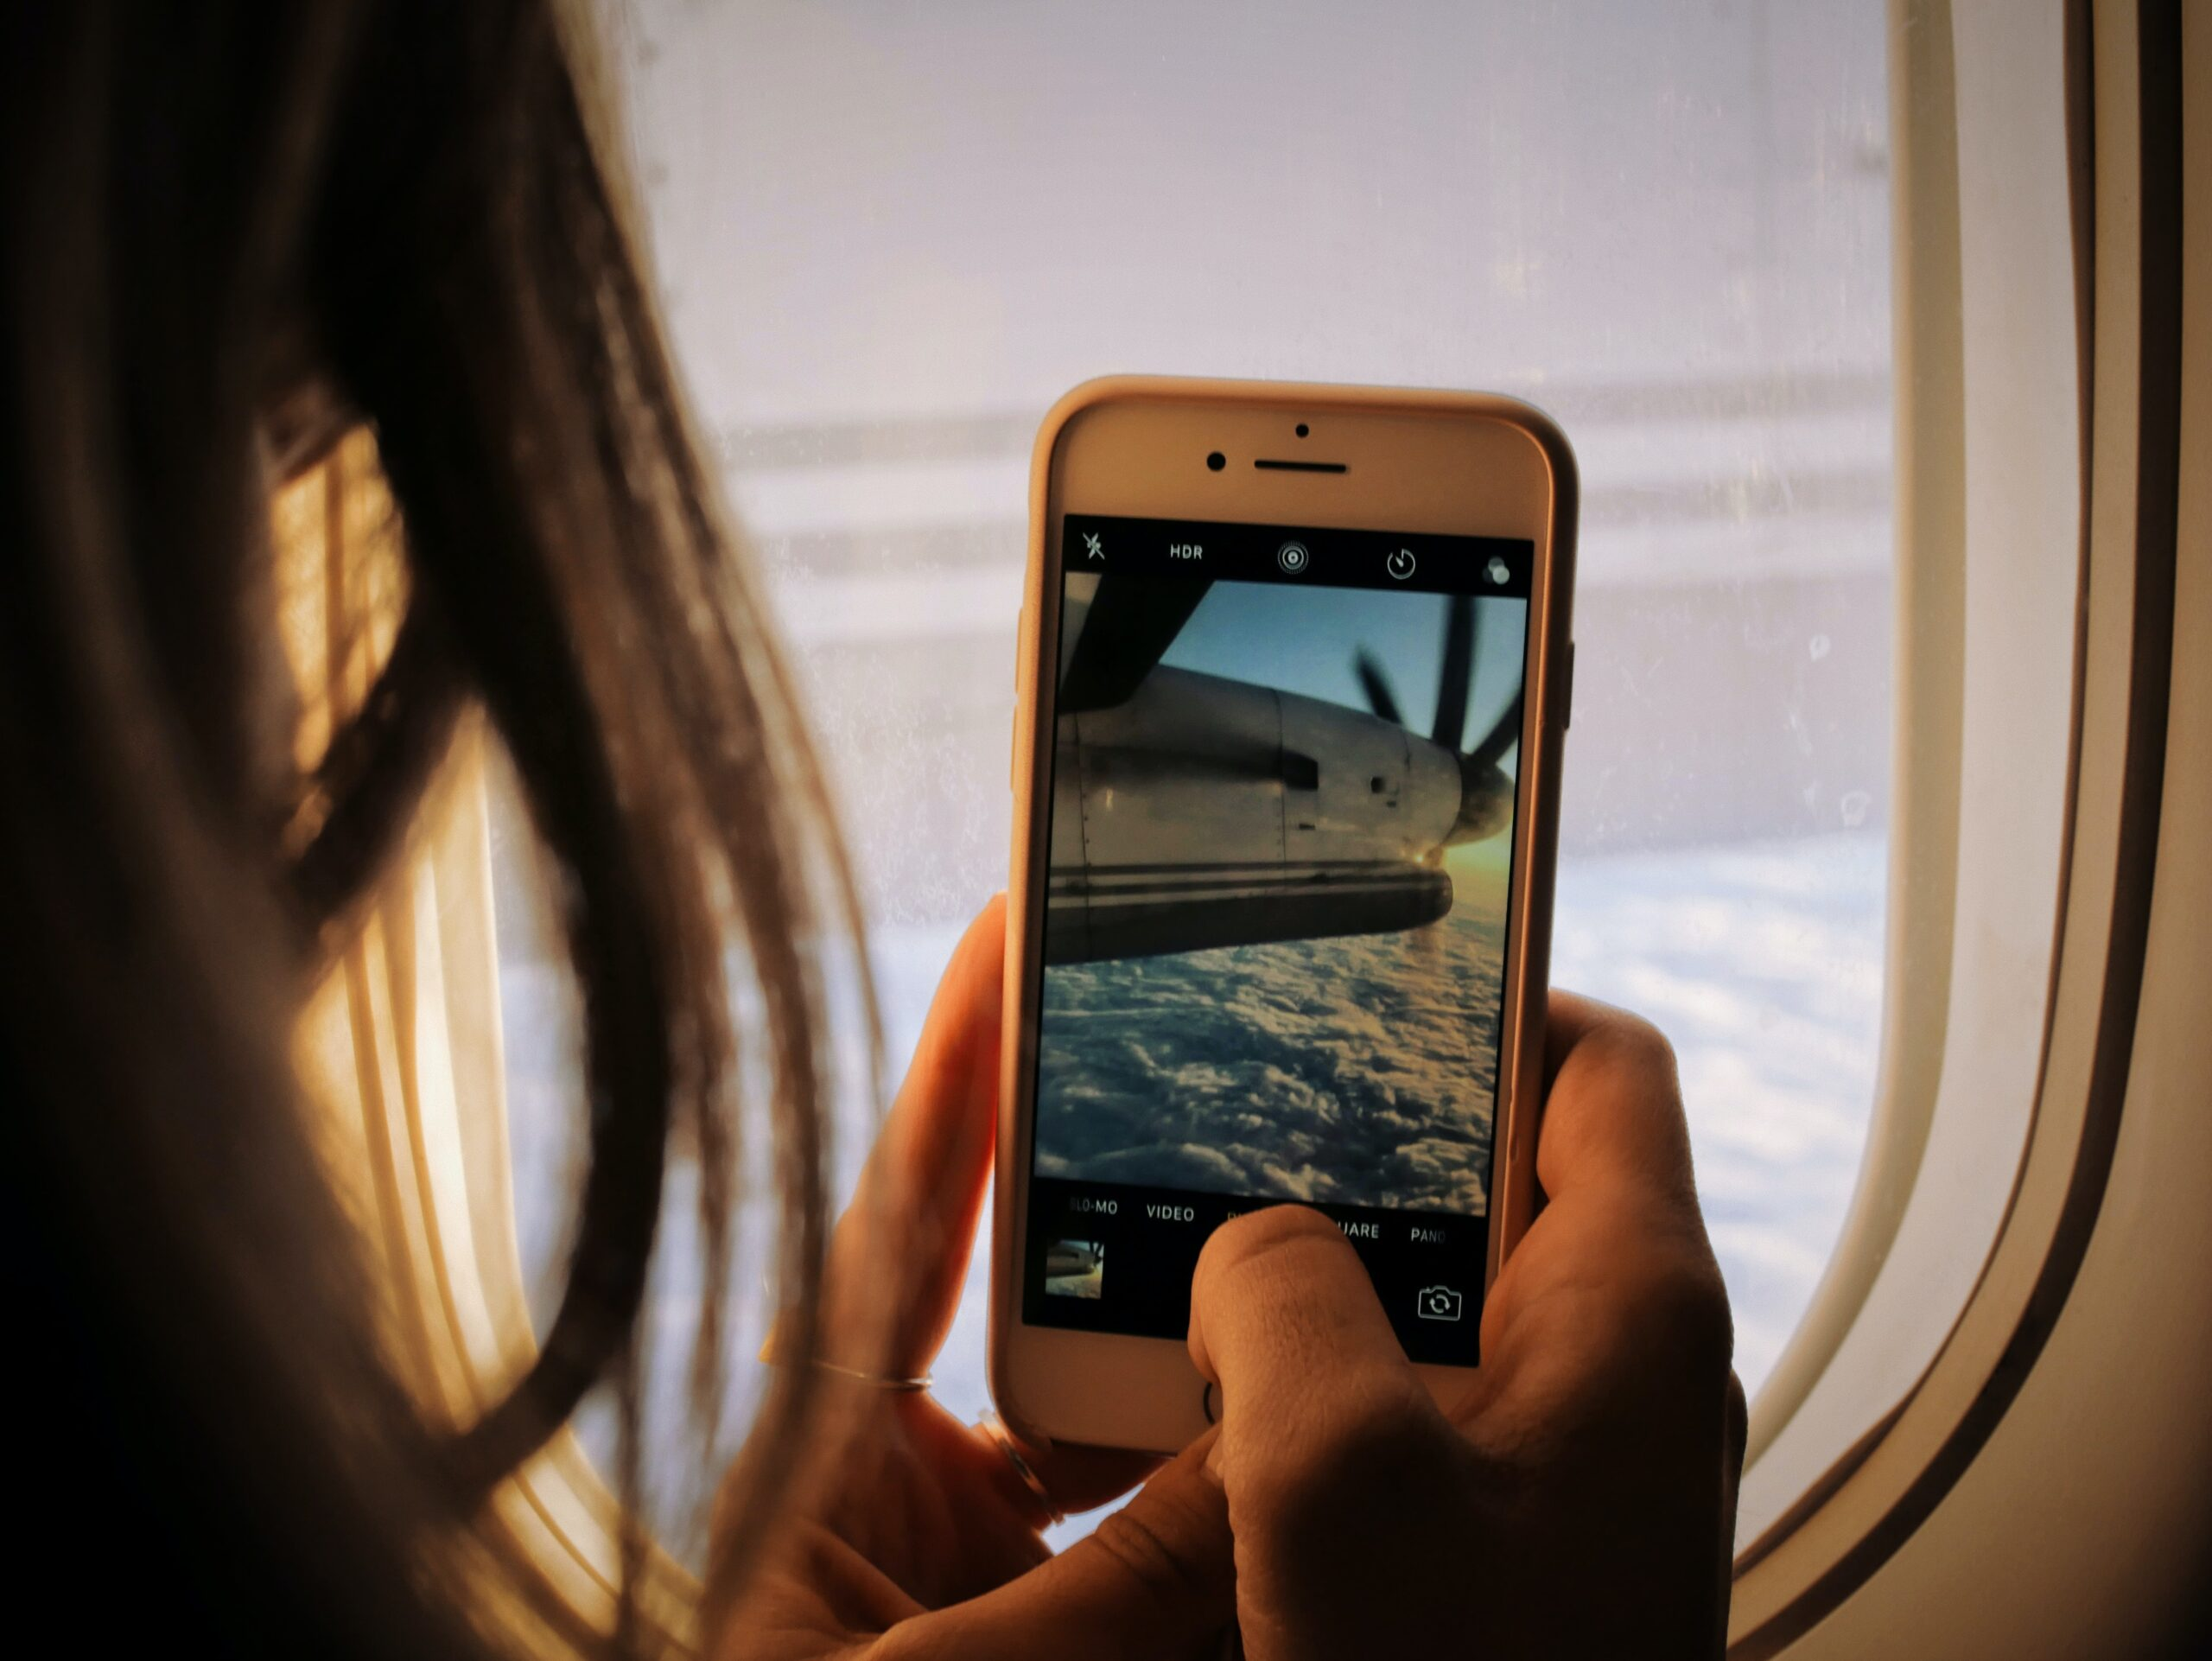 A cracked screen during holiday! How to prevent and fix